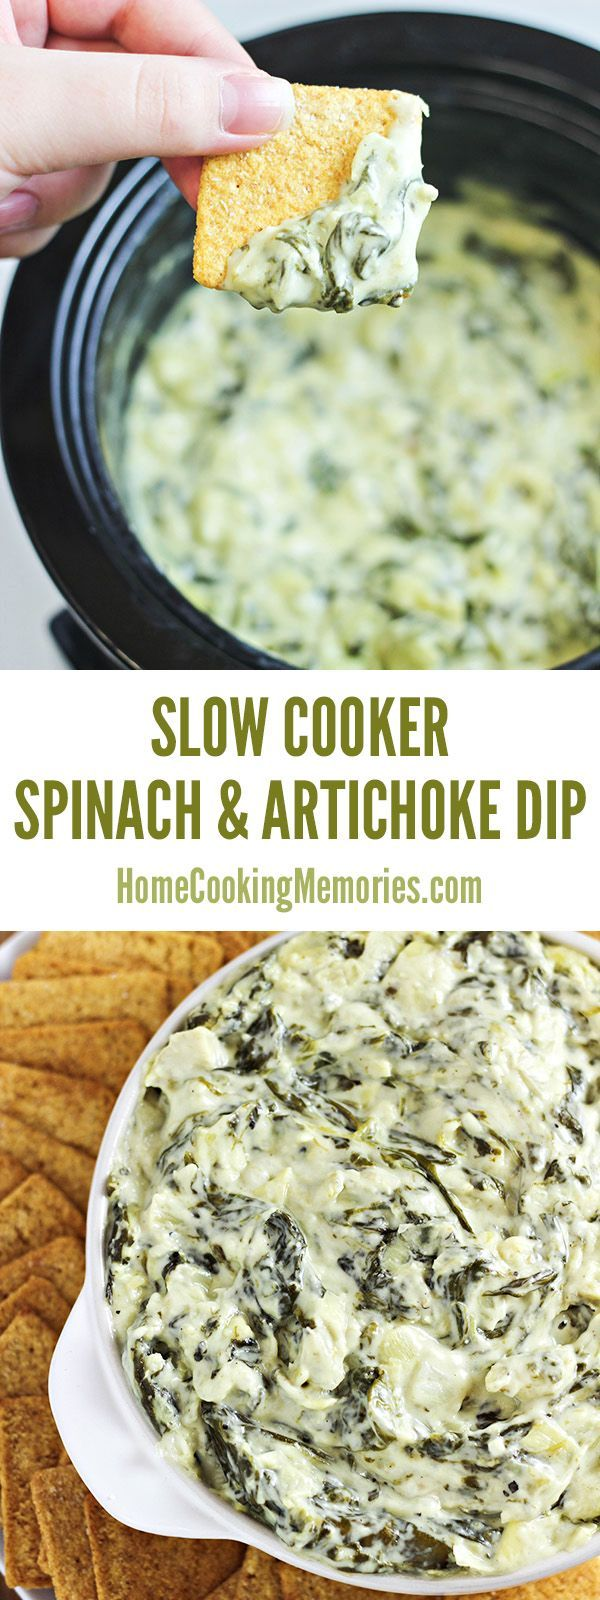 This delicious Slow Cooker Spinach and Artichoke Dip recipe is easy and cheesy! A hot dip, but doesn't have to be cooked in the oven. Great for potlucks!